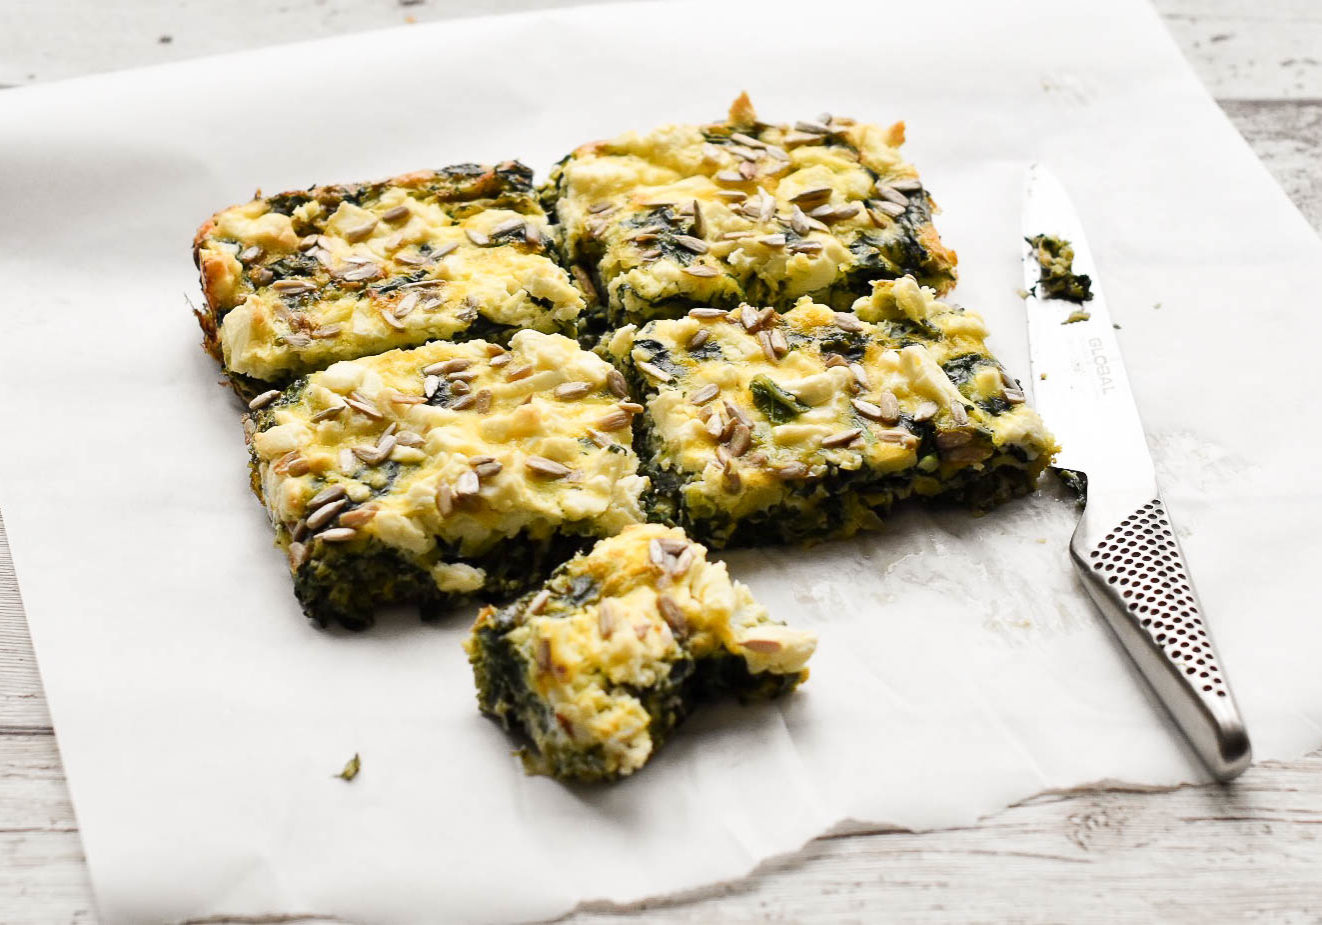 kalespinachfritata (1 of 1)